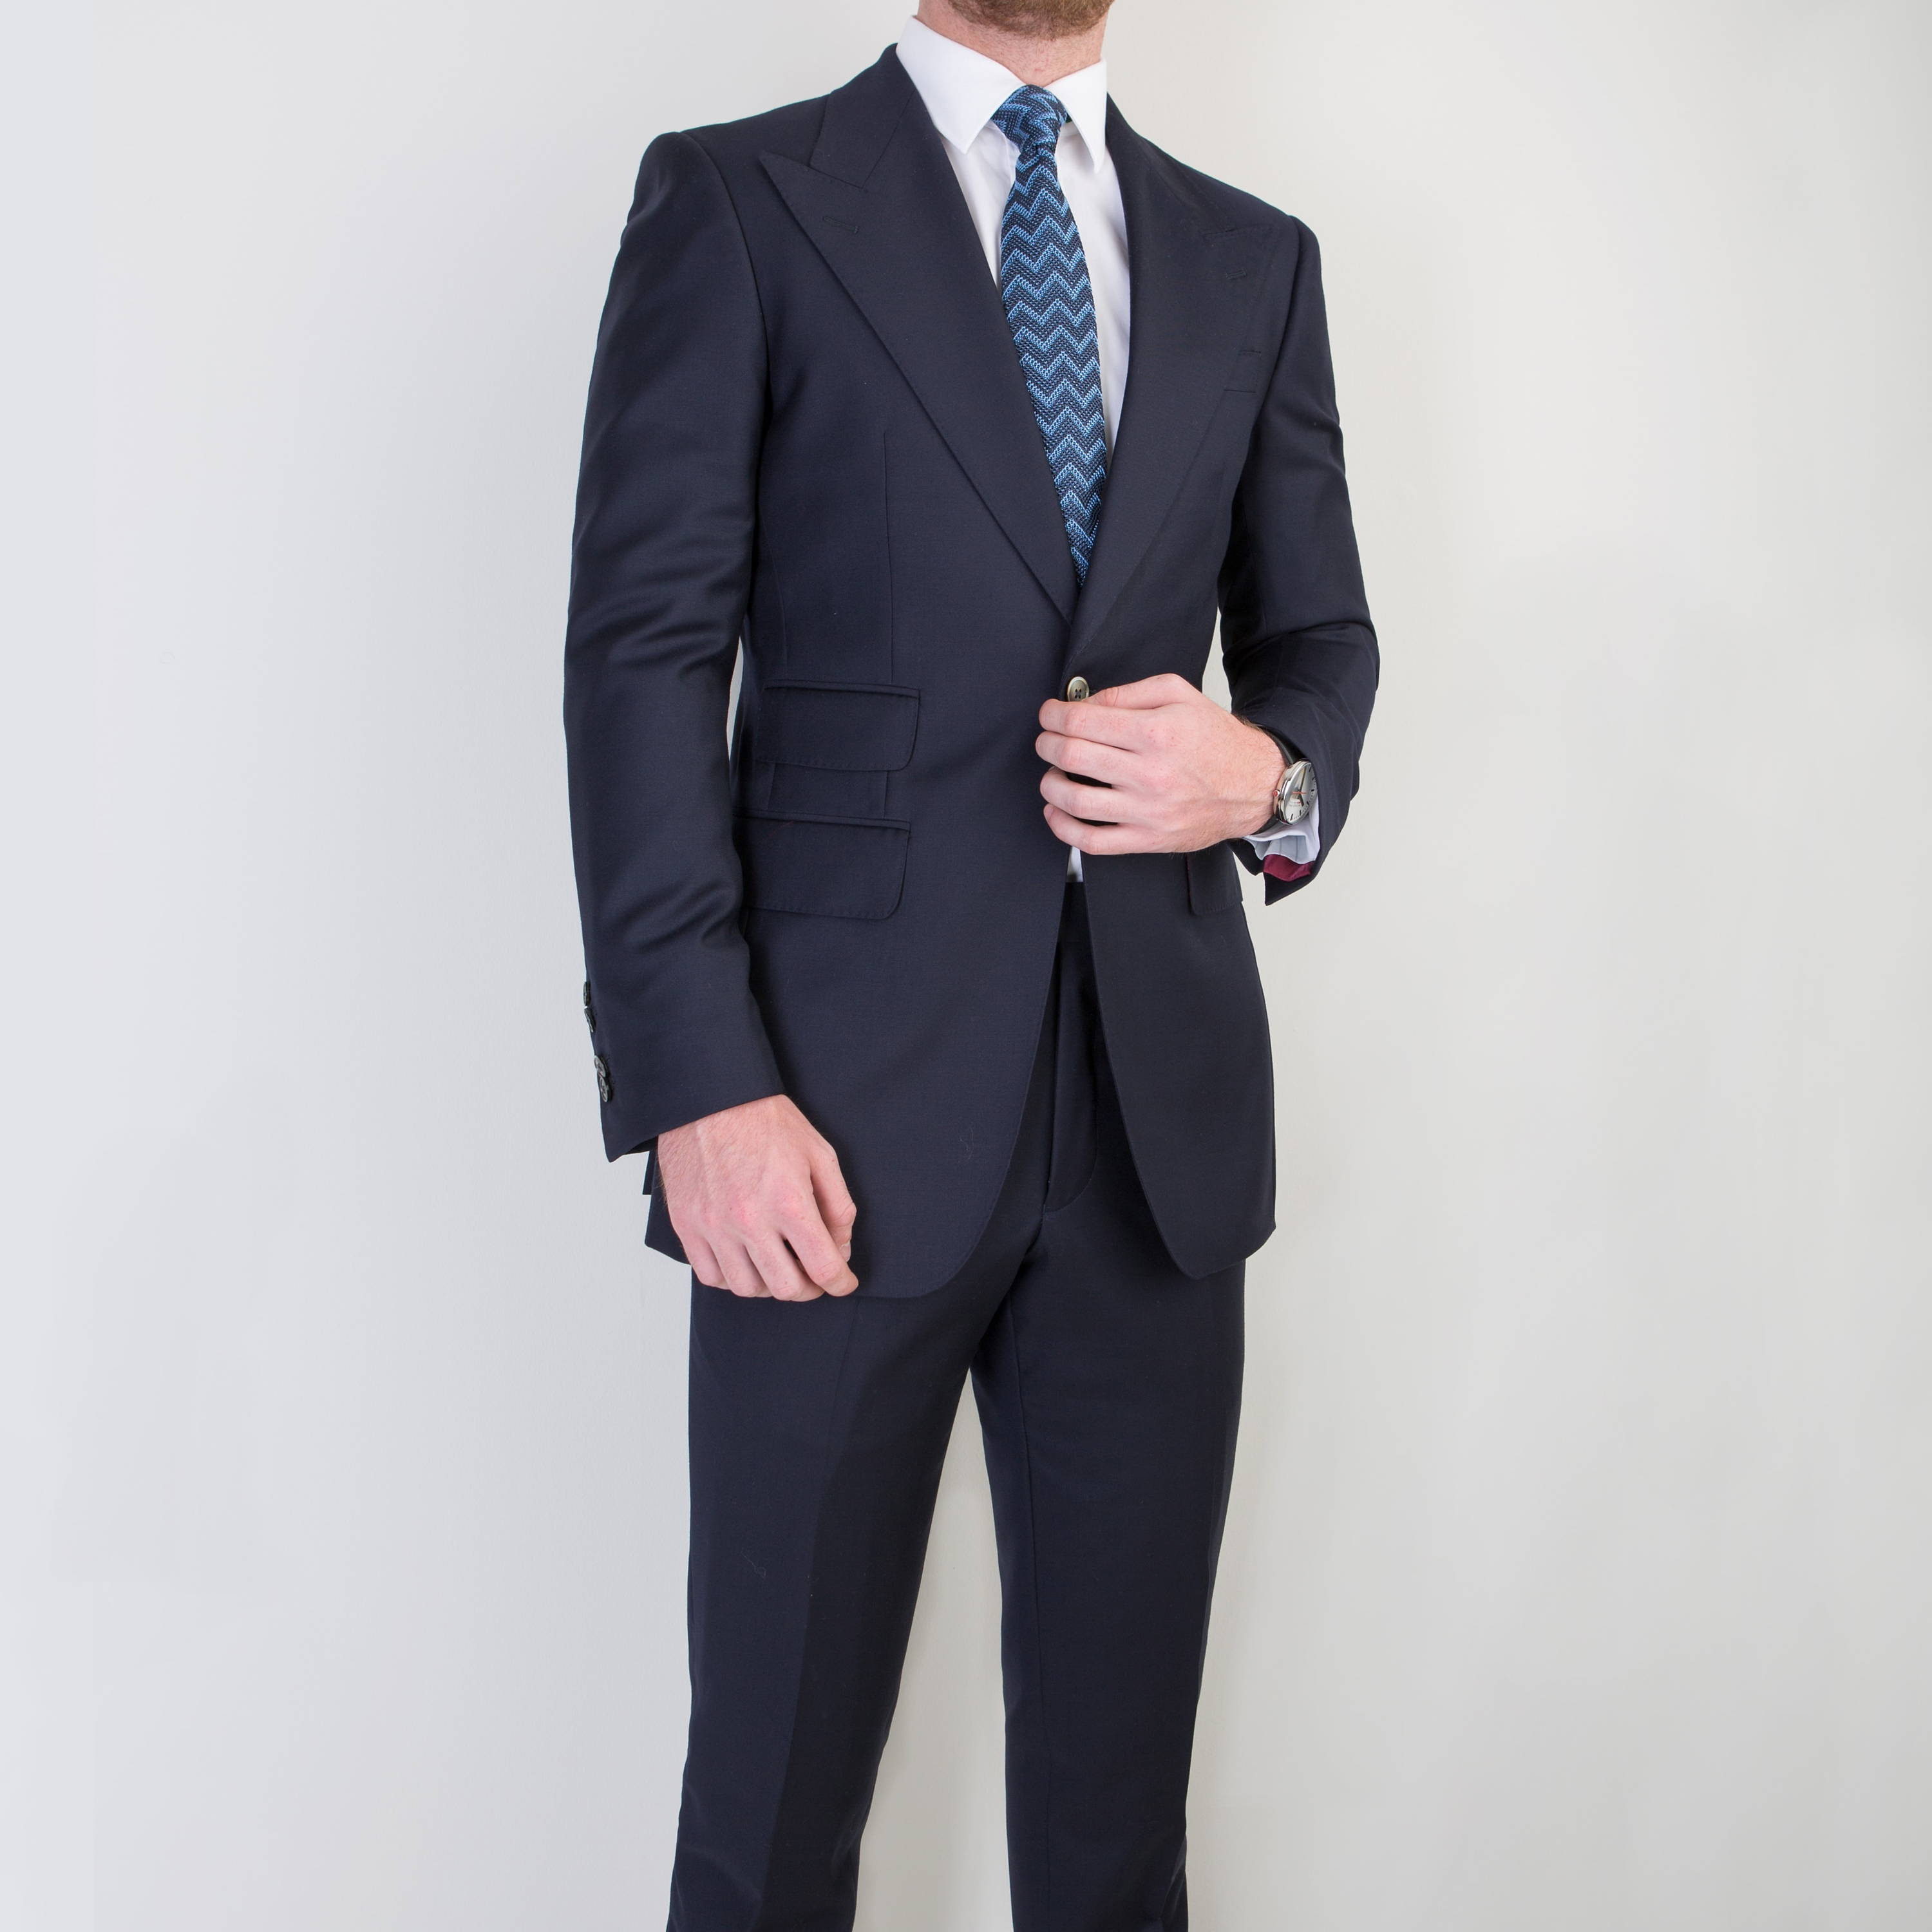 Mullen & Mullen bespoke tailoring single breasted business suit